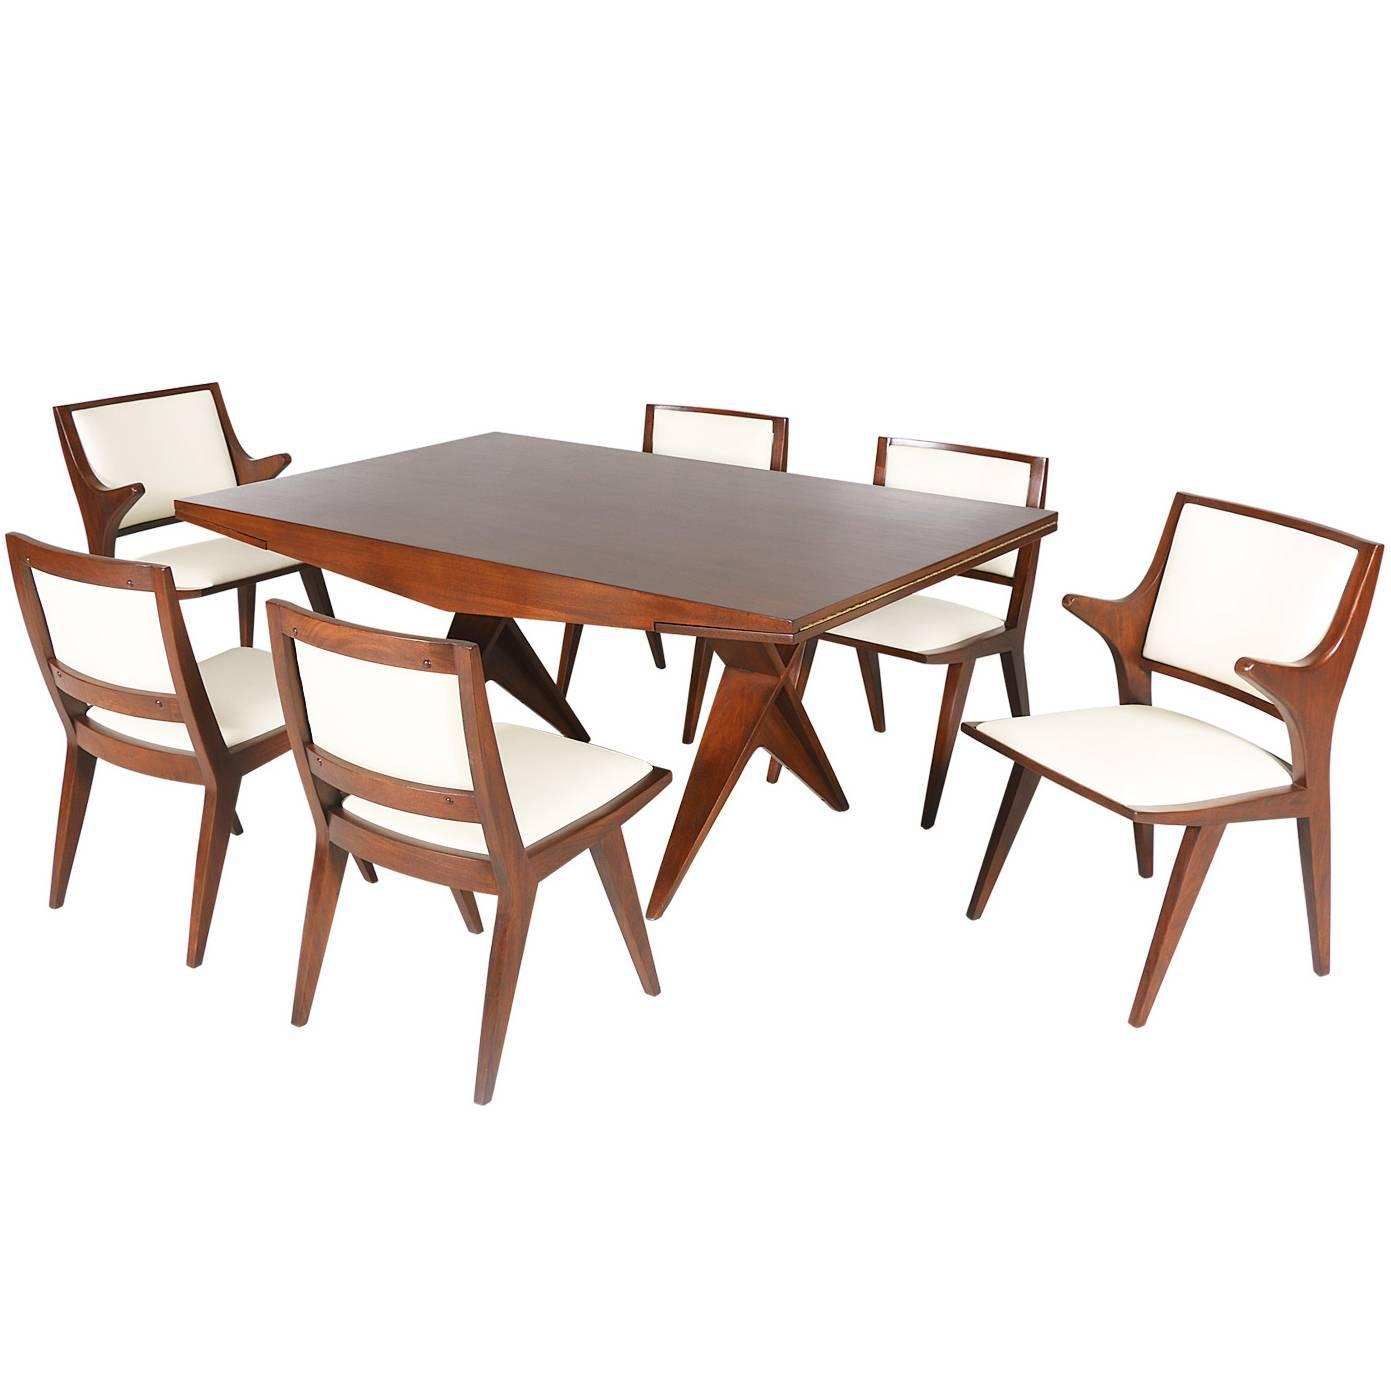 Rare architectural dining set by dan johnson for hayden for Dining hall furniture